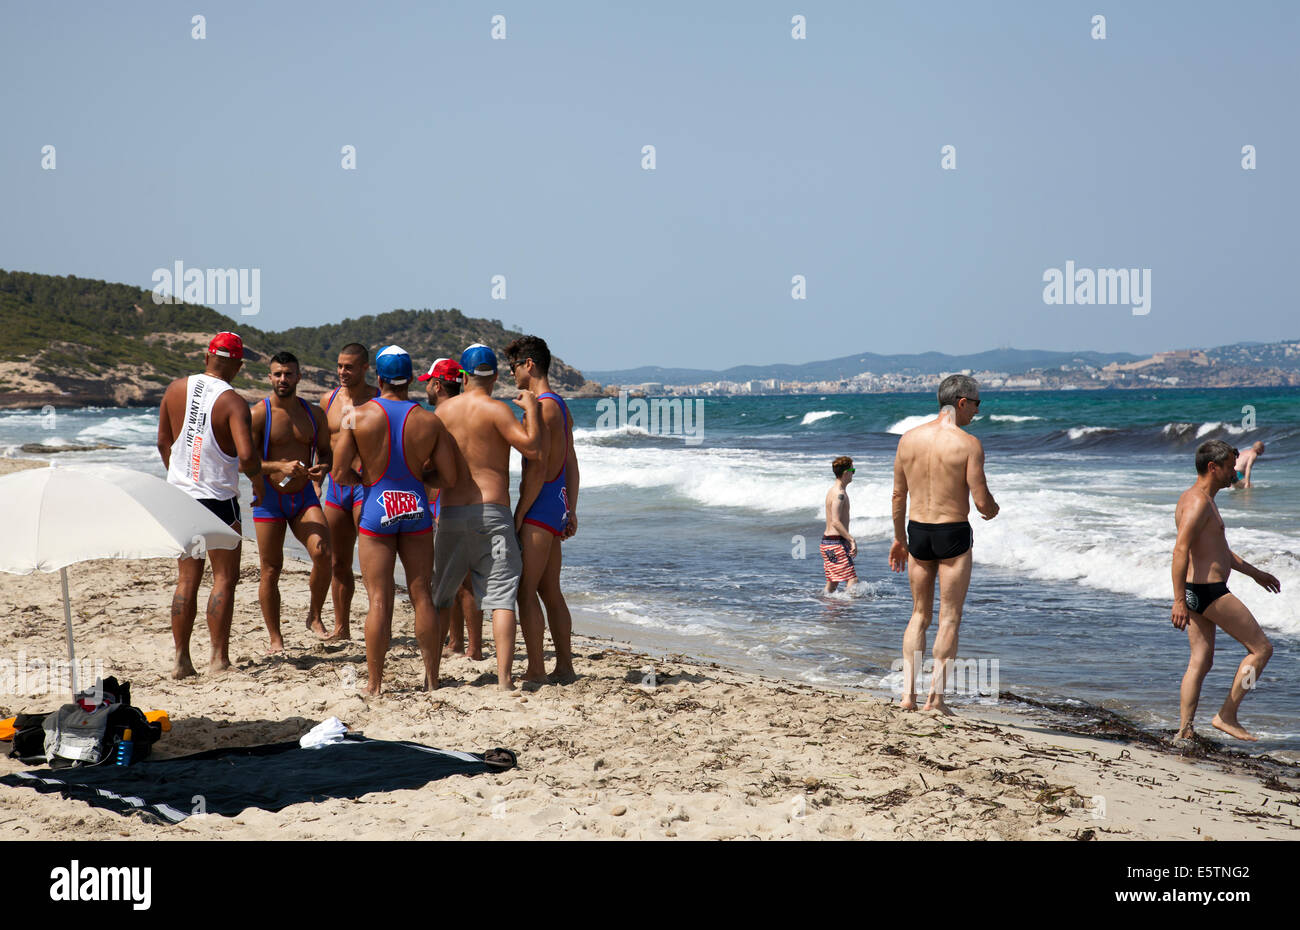 Superman Club Night Promoters on El Chiringay Beach in Ibiza - Stock Image